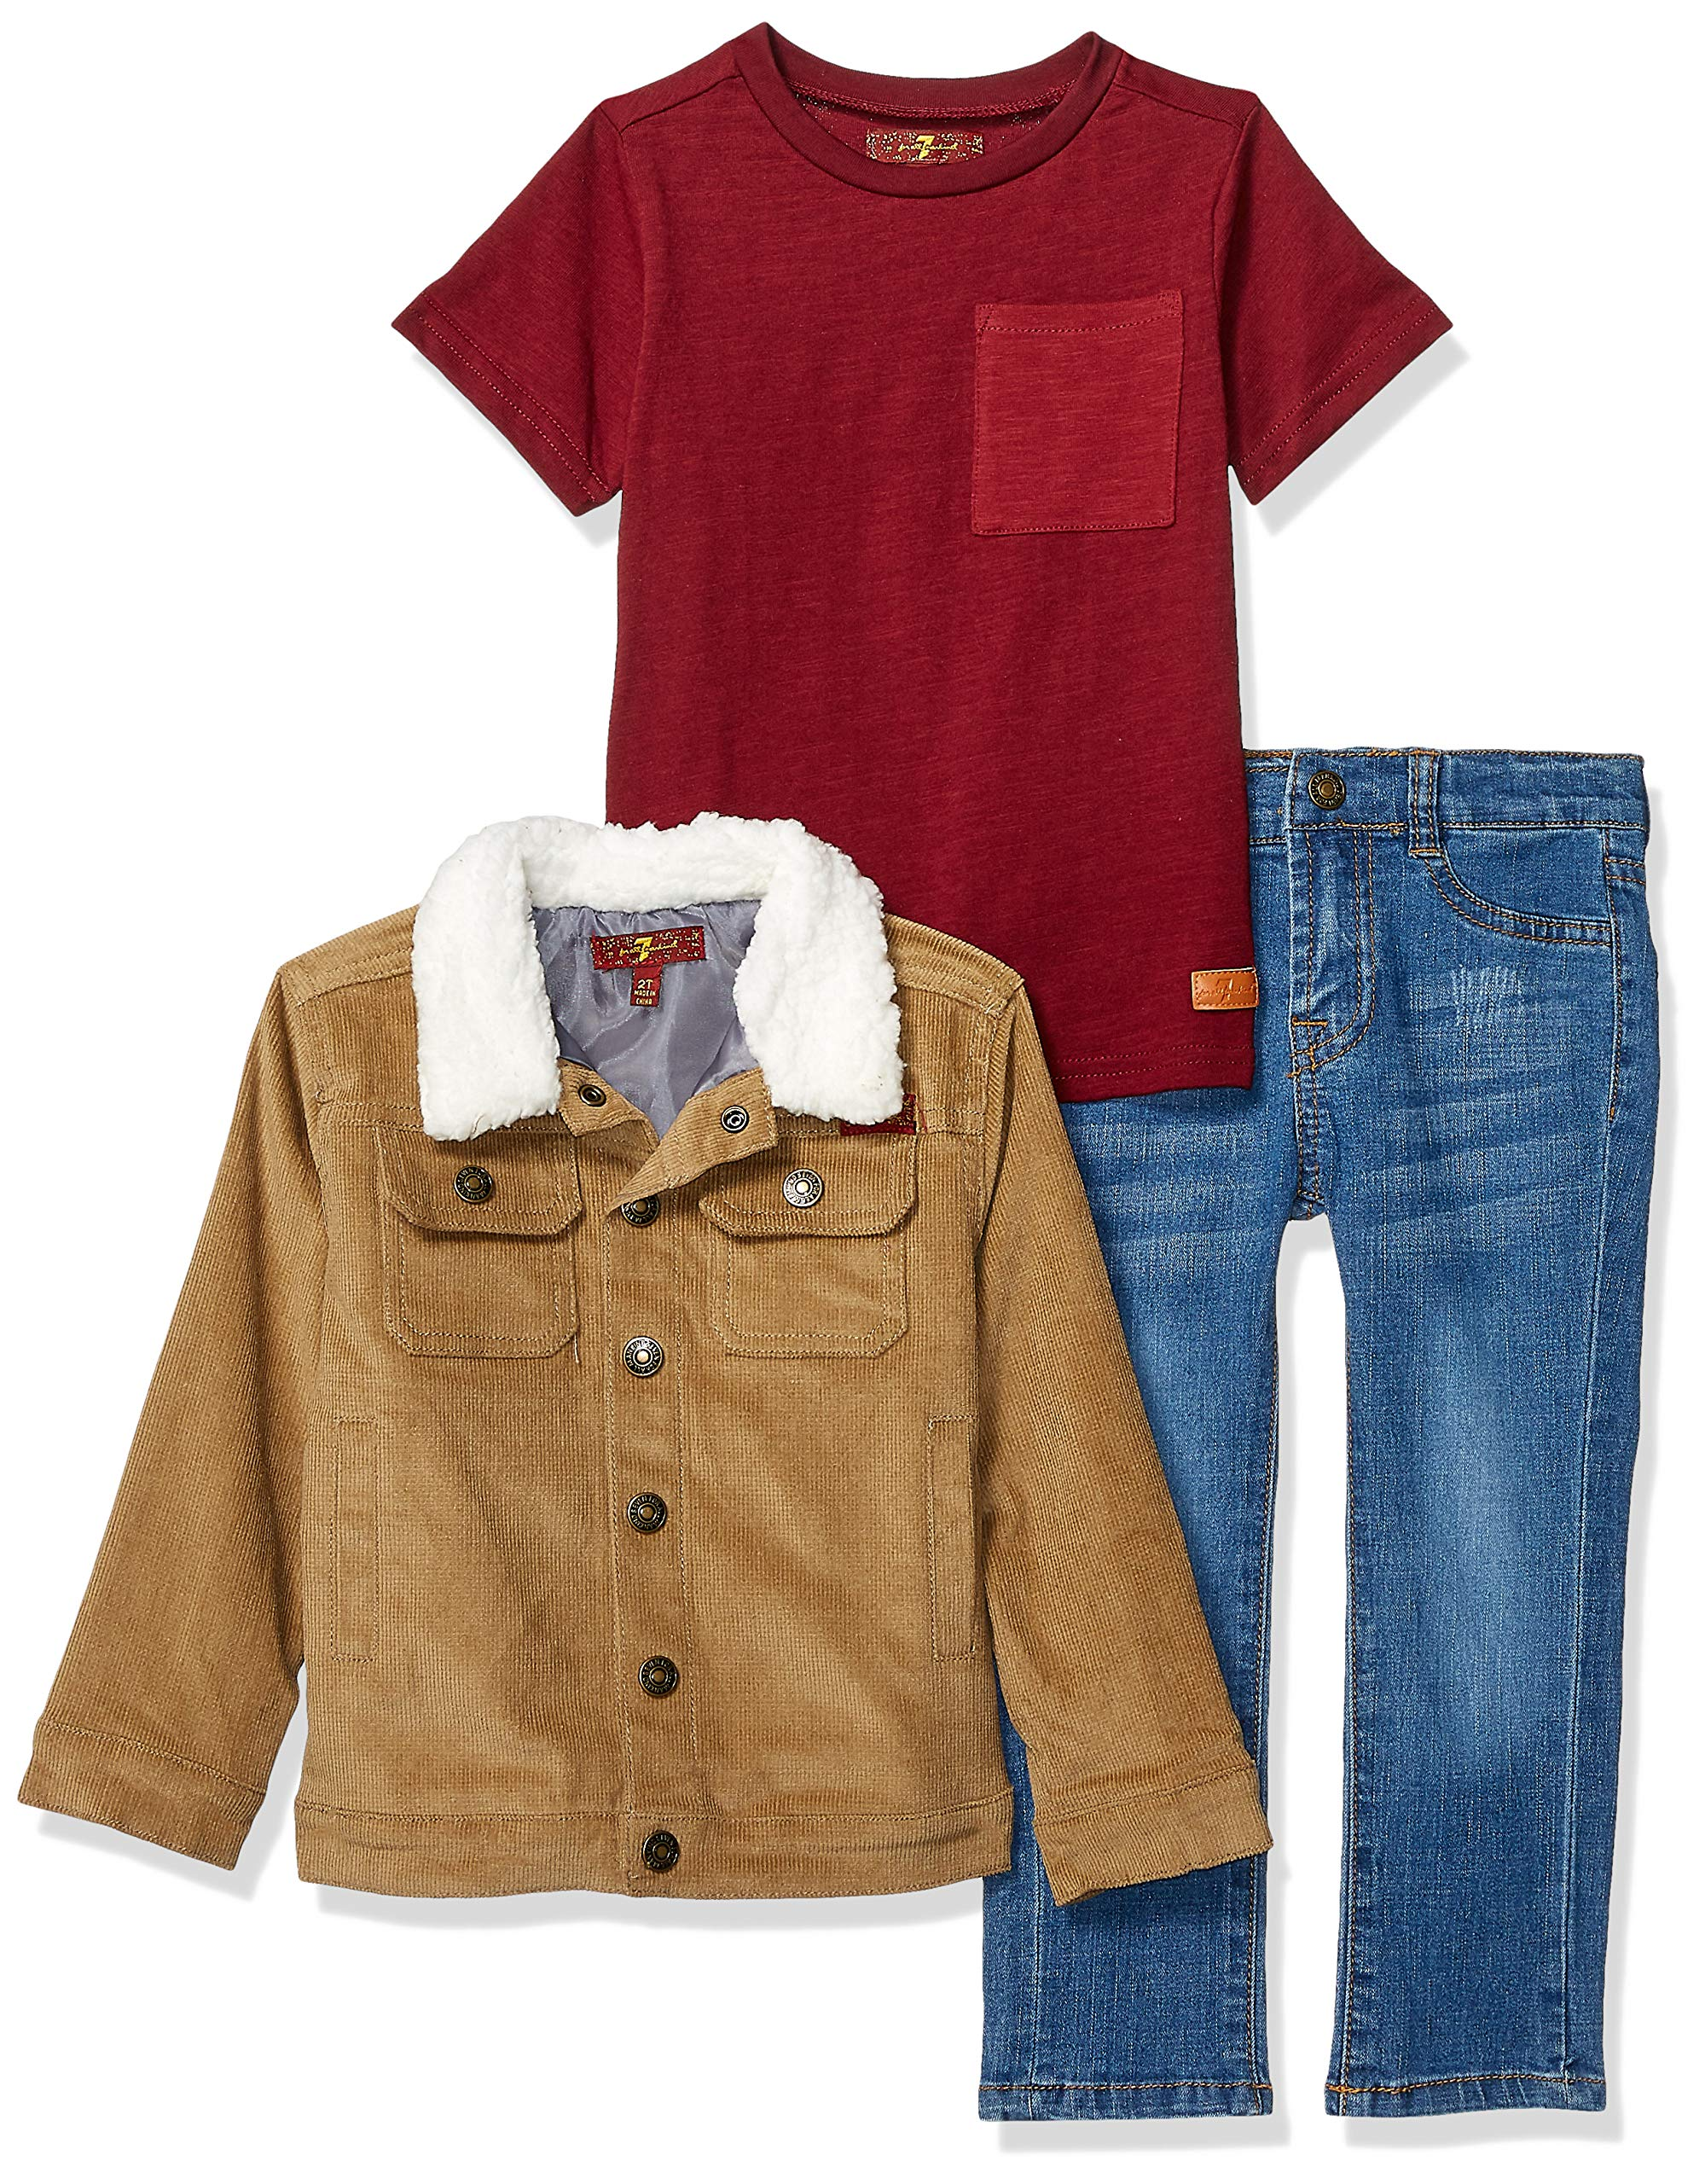 7 For All Mankind Kids Boys' Toddler Jacket, Short Sleeve Tee and Jean Set, Khaki 2T